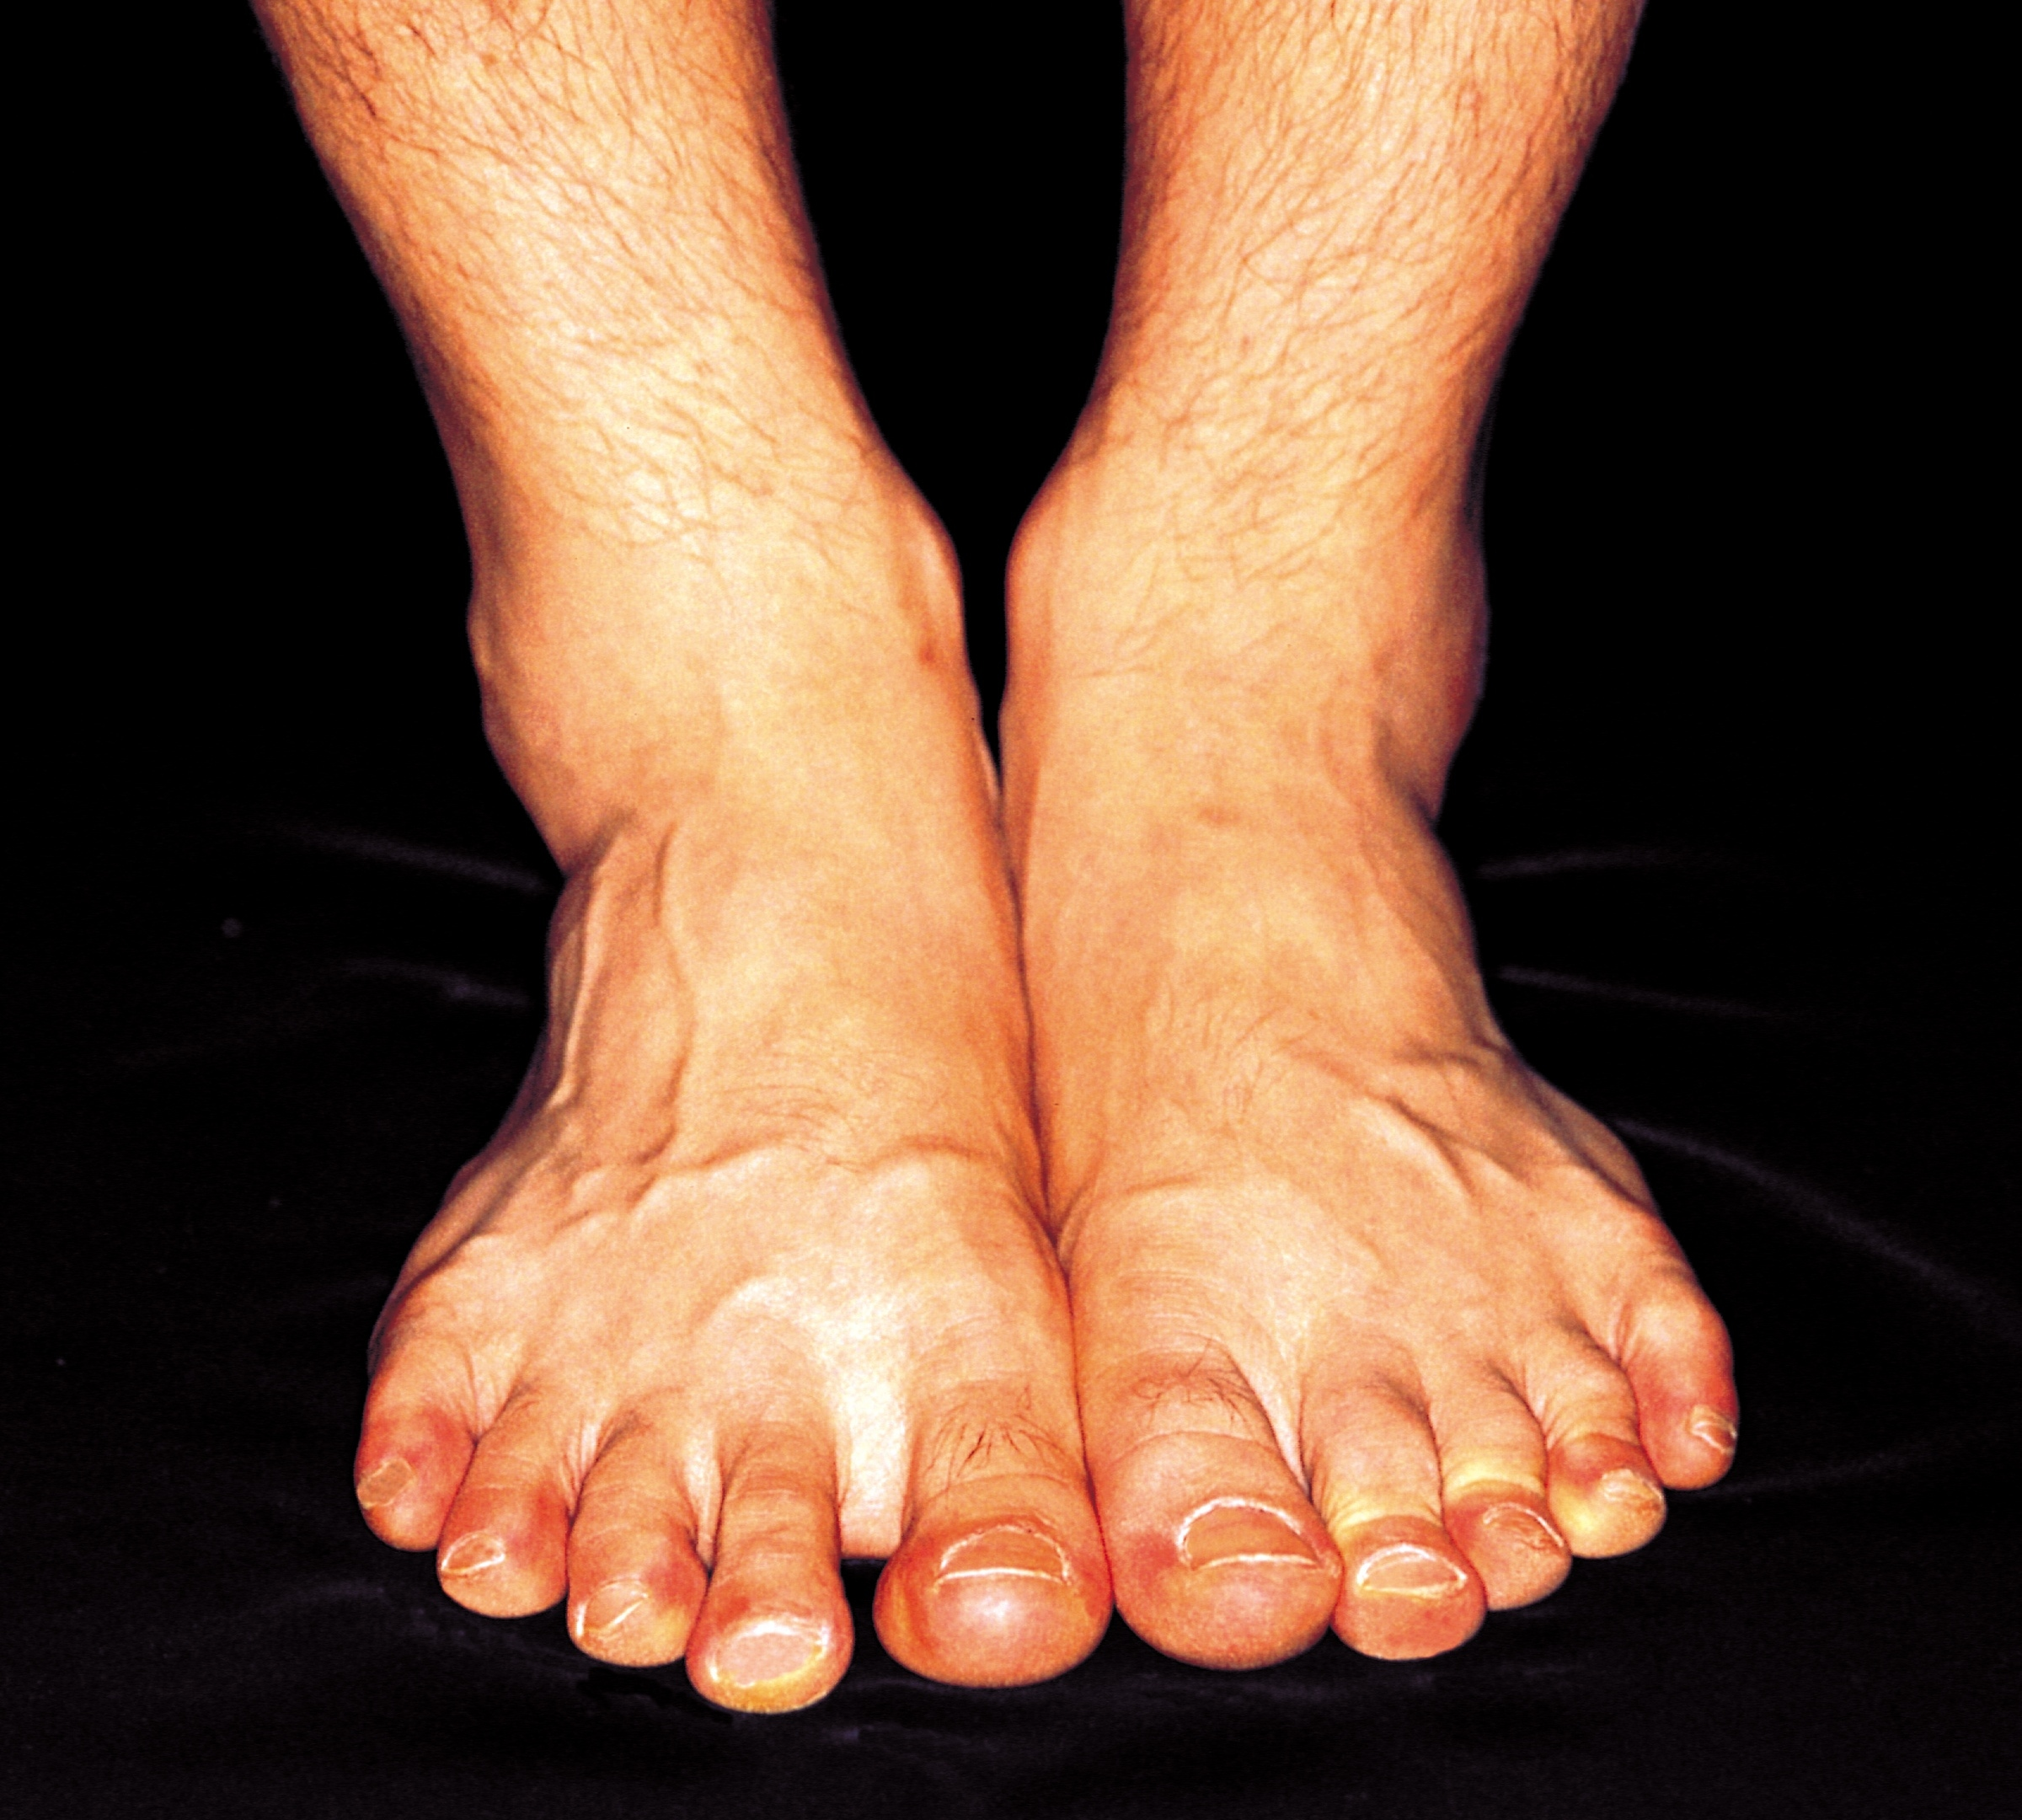 What Causes Red Skin on Feet & Ankles?